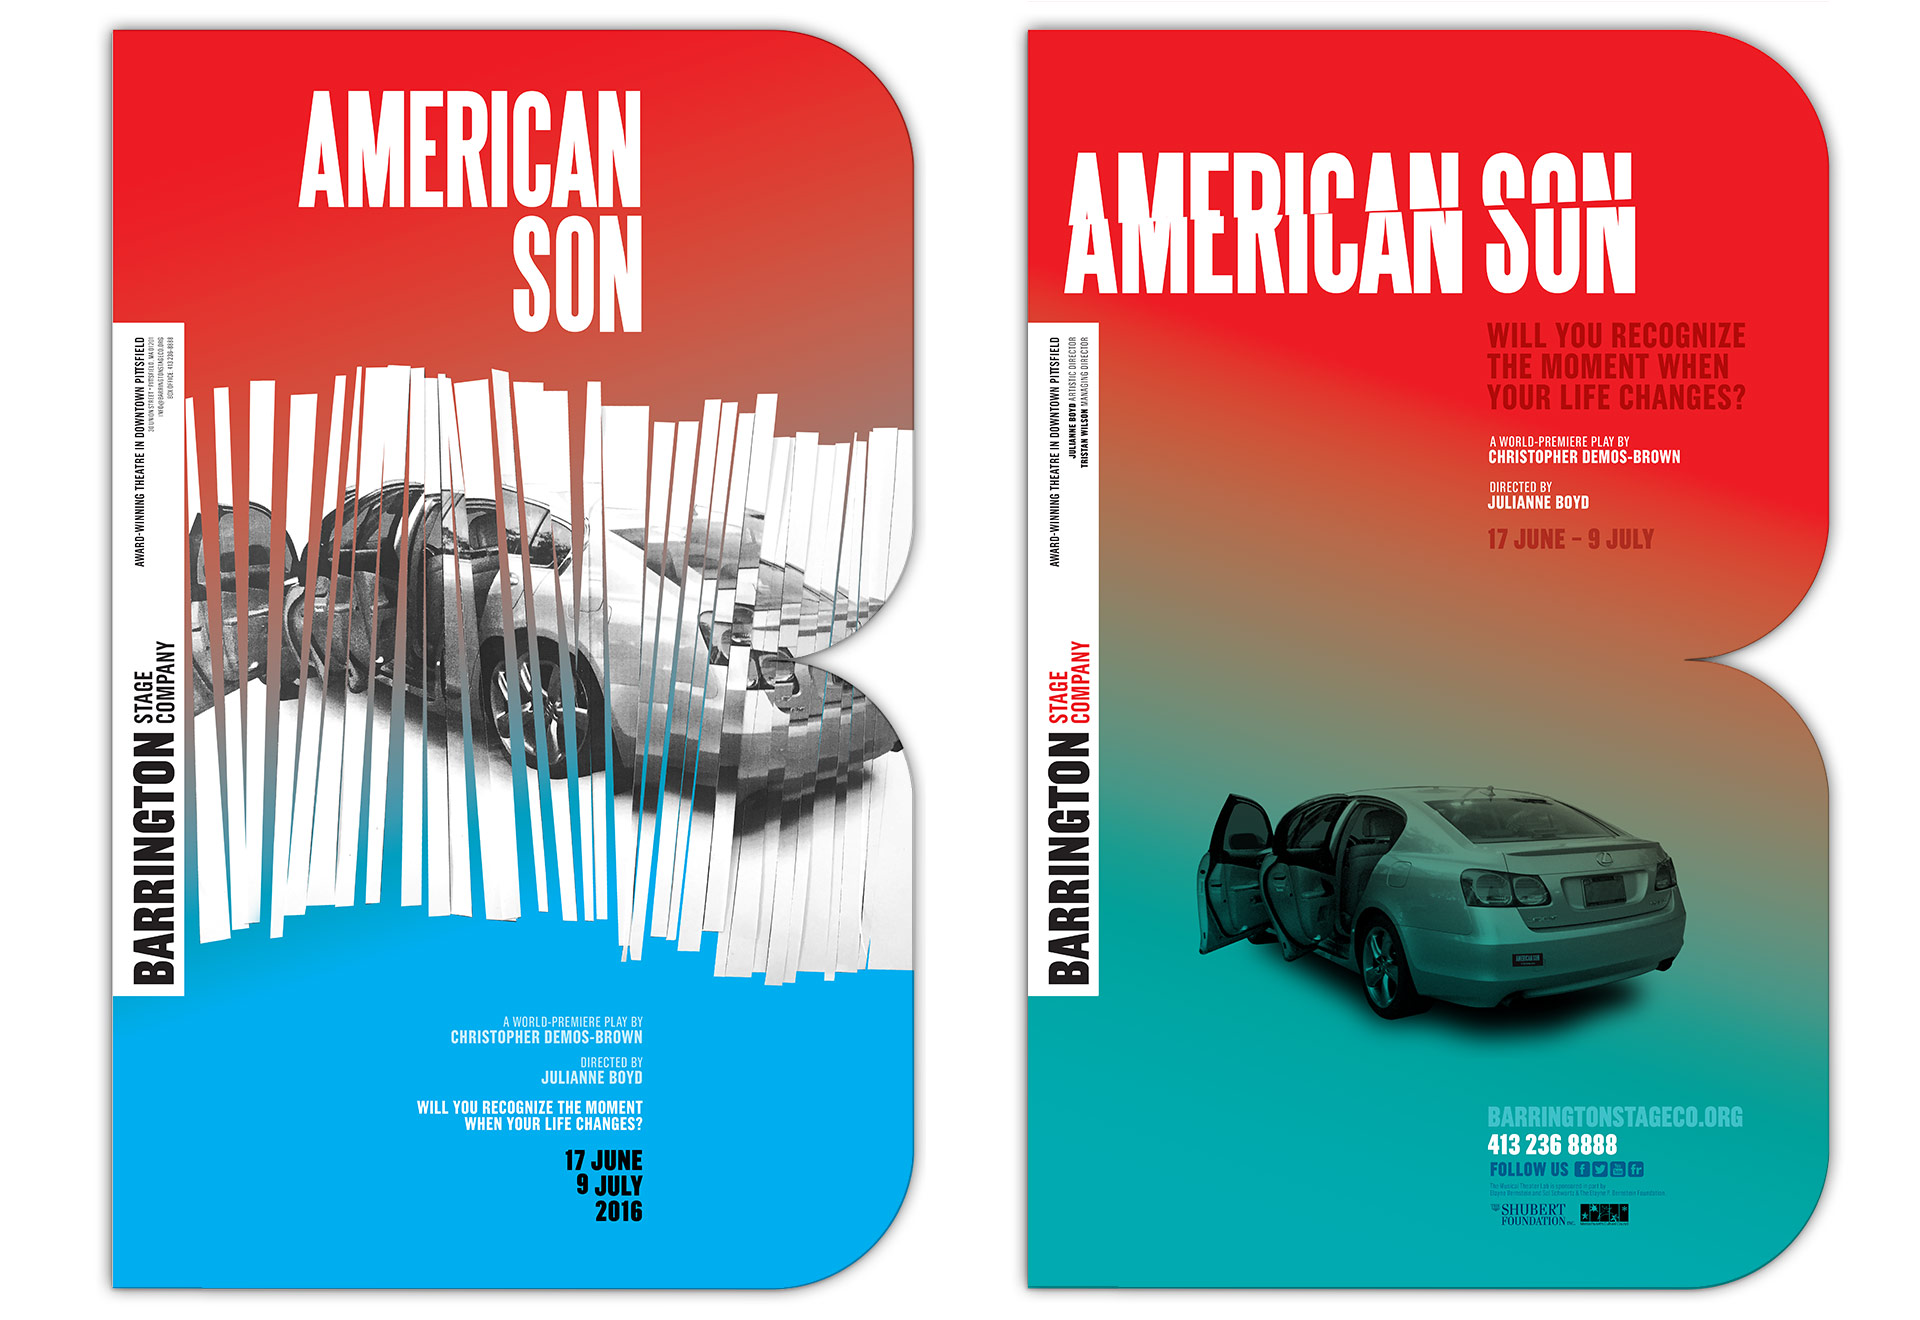 Barrington-comps-american-son-03.jpg